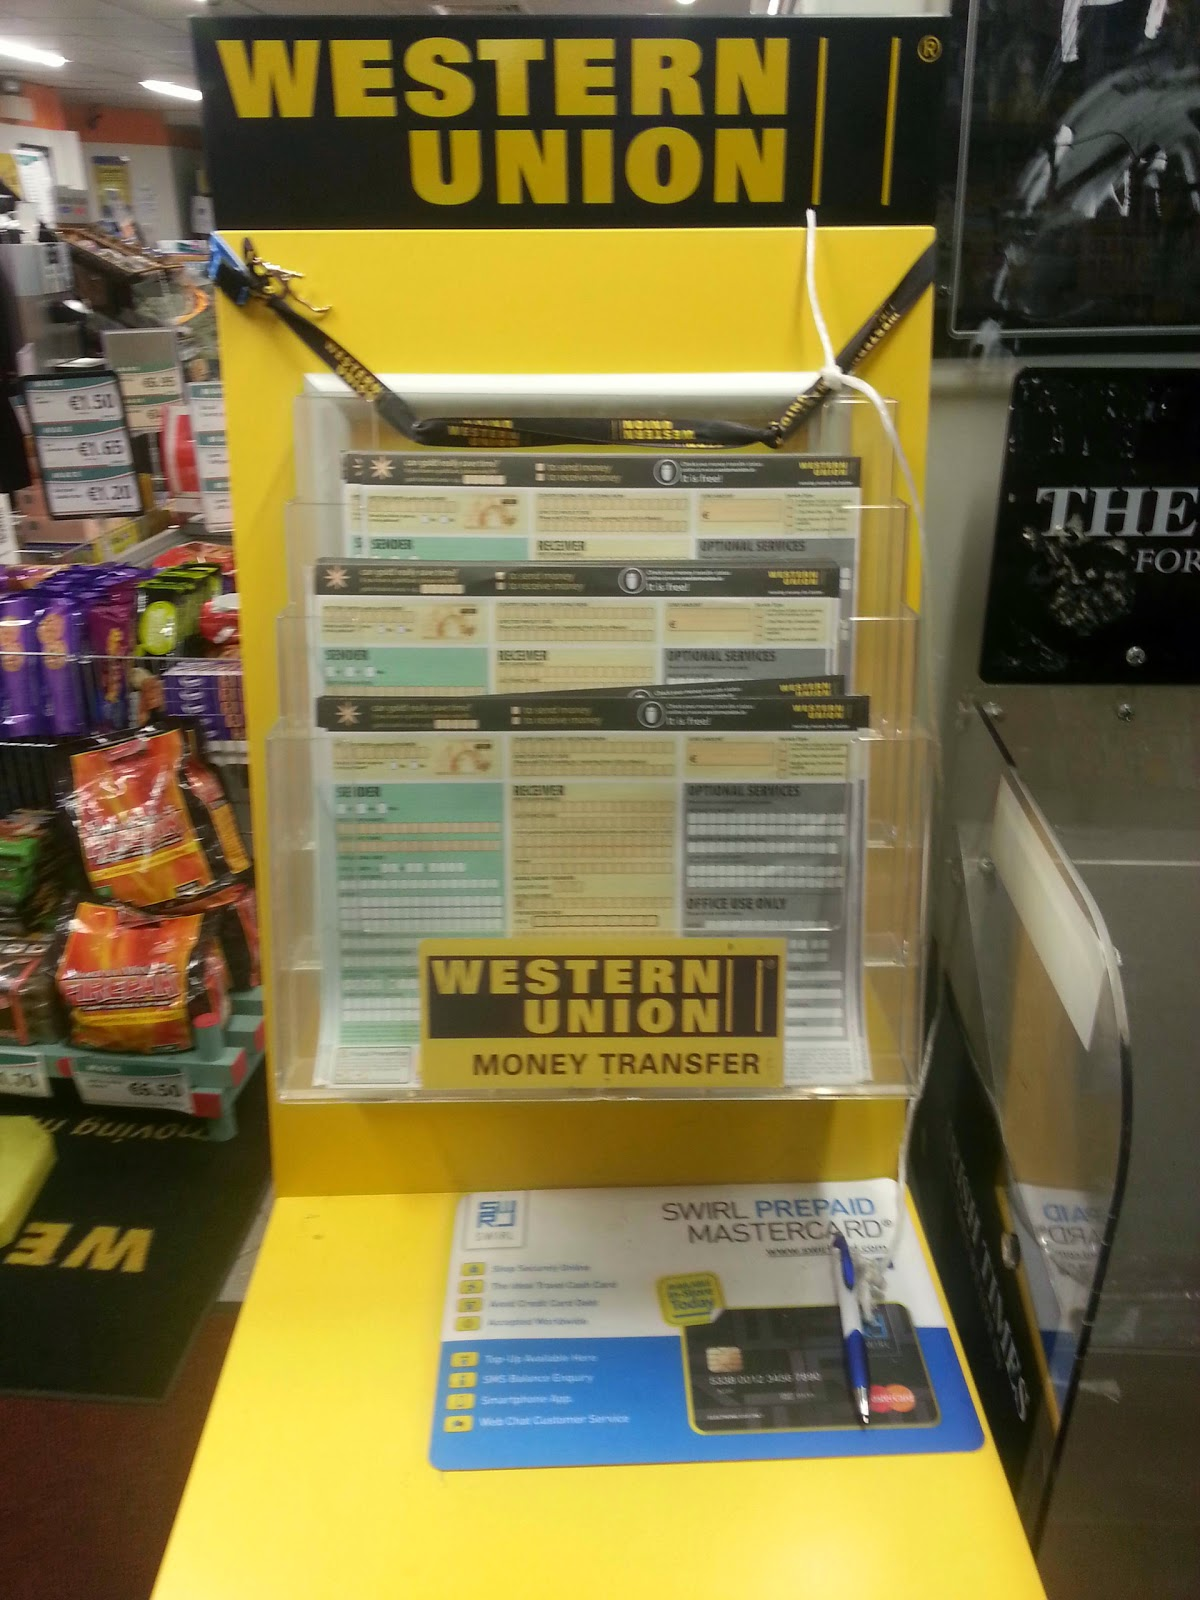 Western union quick collect form